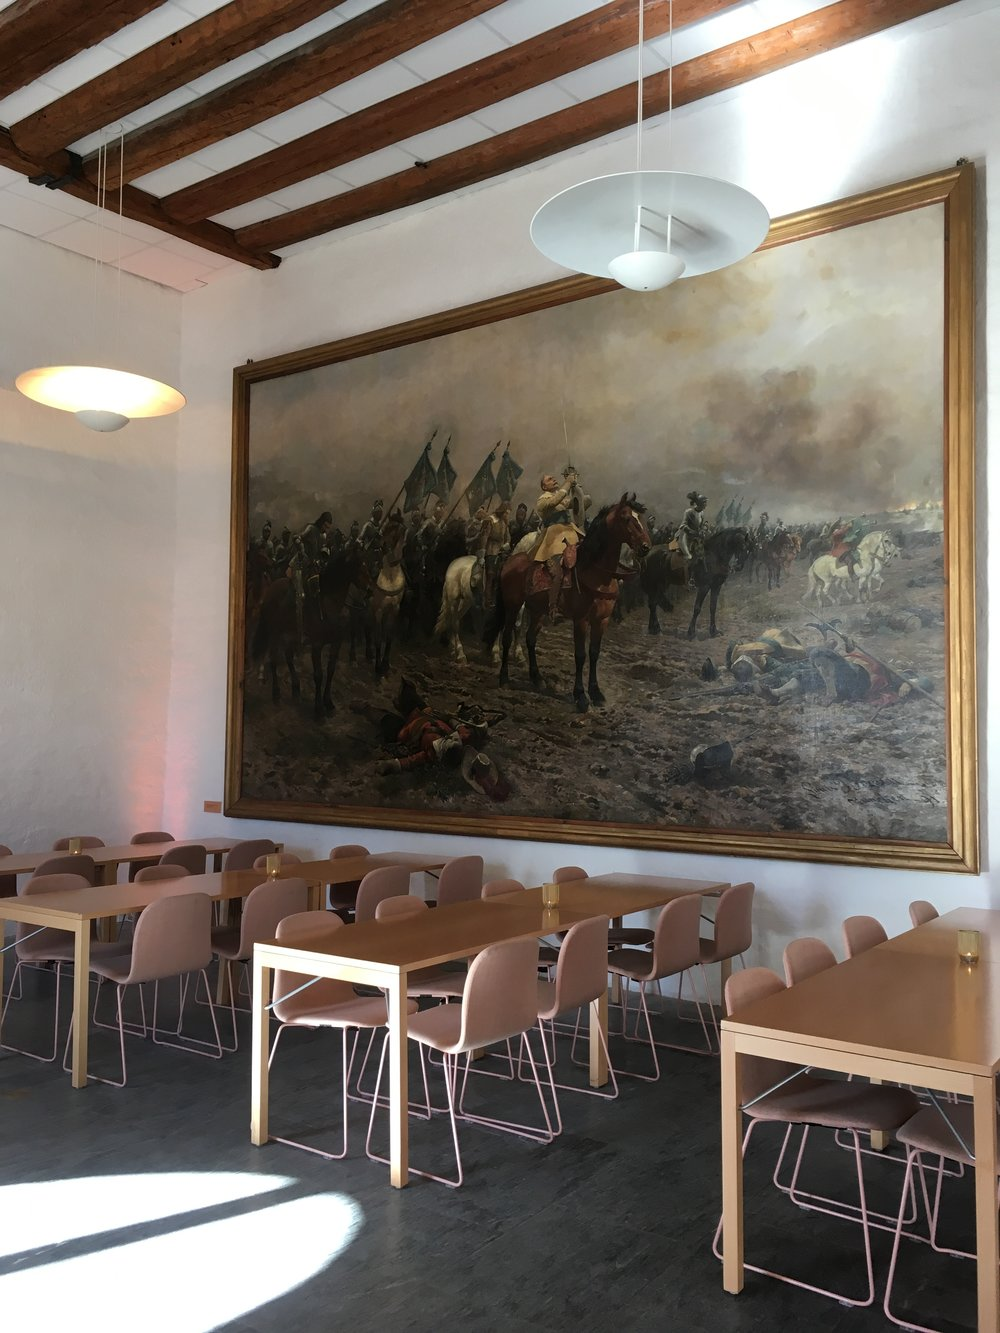 Painting in the cafe